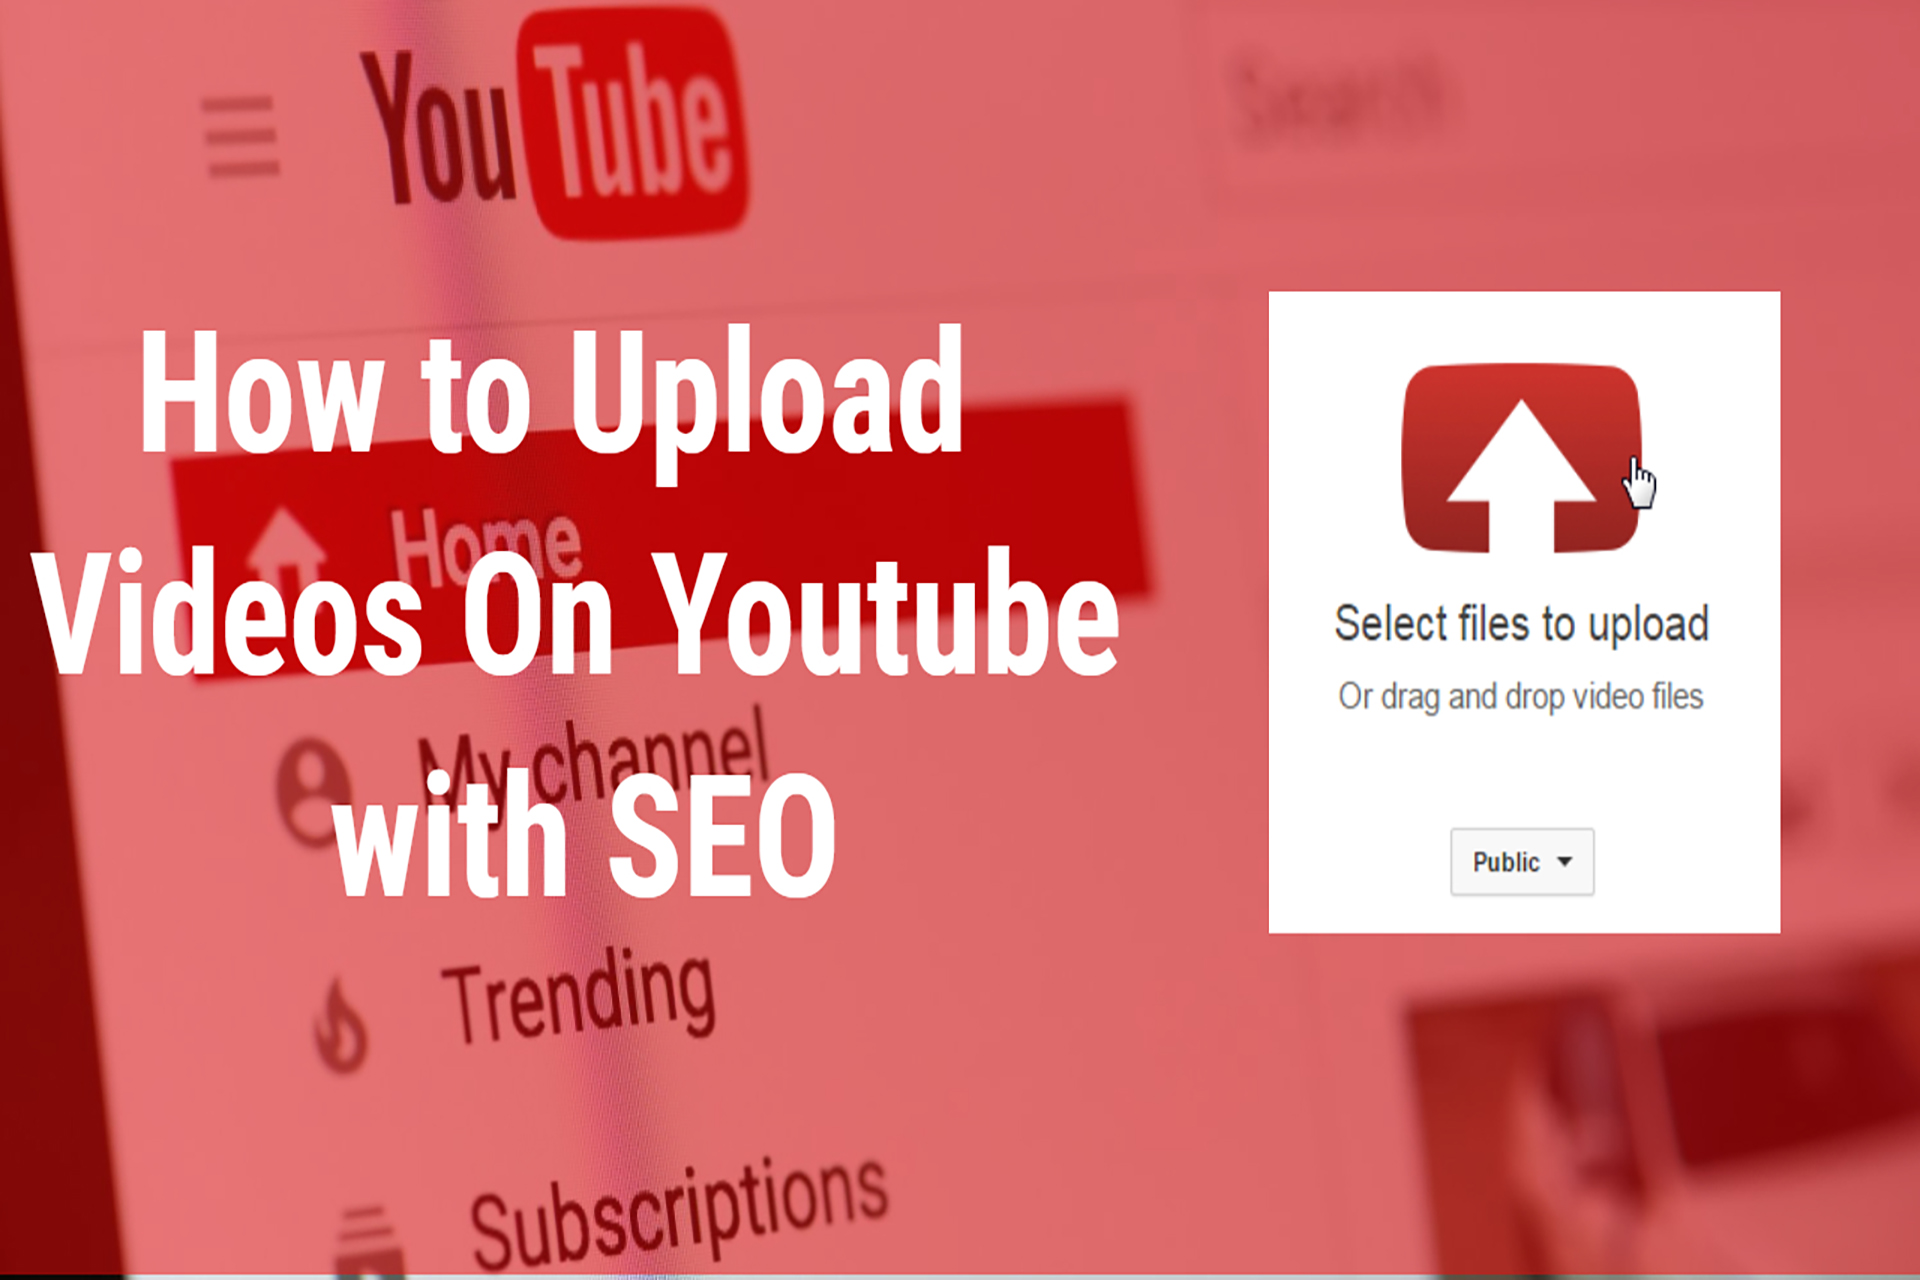 how to upload videos on youtube,how to upload a video on youtube,how to upload video on youtube,upload videos to youtube,how to upload videos to youtube,how to upload a video to youtube,how to properly upload videos to youtube,upload video to youtube,how to upload videos on youtube channel,how to upload a video,how to upload videos on youtube 2018,how to upload a video to youtube from iphone,how to upload a video to youtube from your phone,youtube upload video tutorial